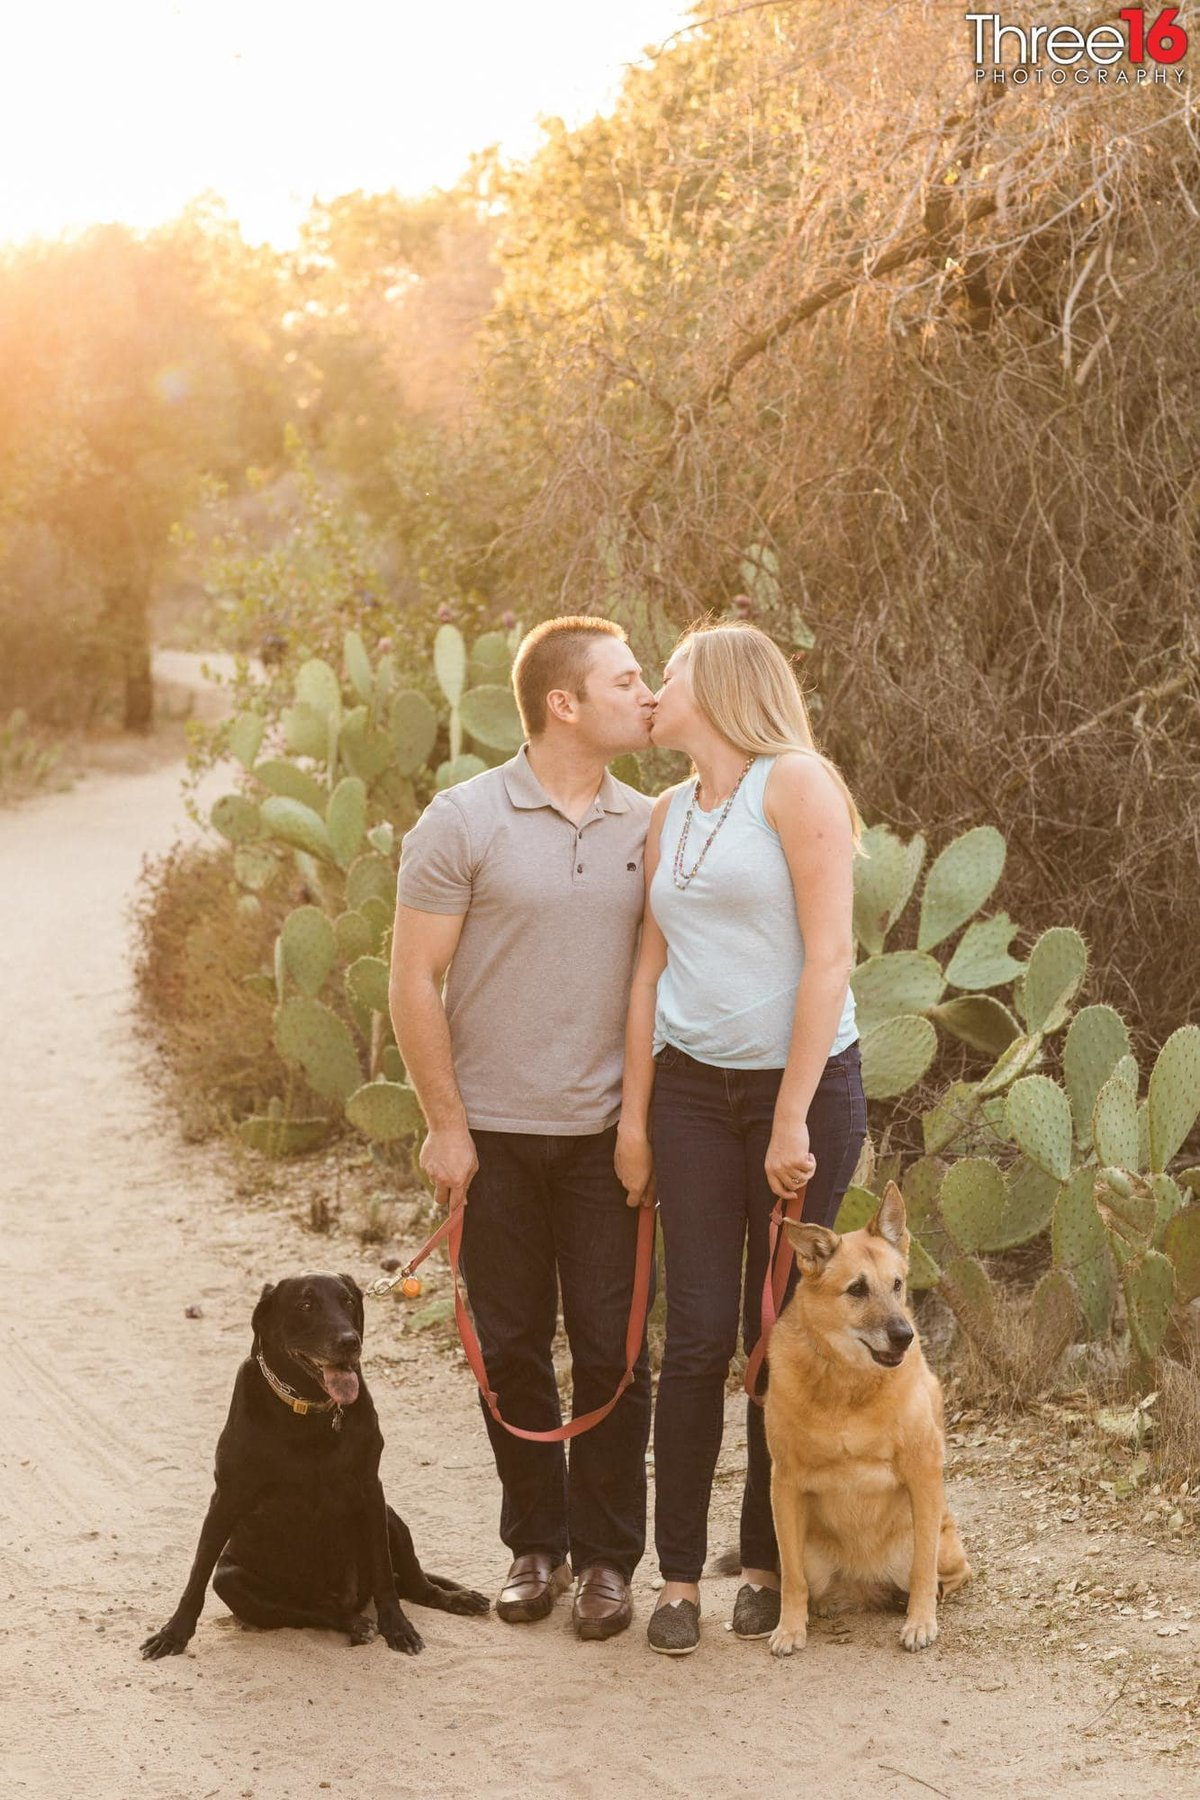 Whiting Ranch Wilderness Park Engagement Photos Trabuco Canyon Orange County Wedding  Photographer